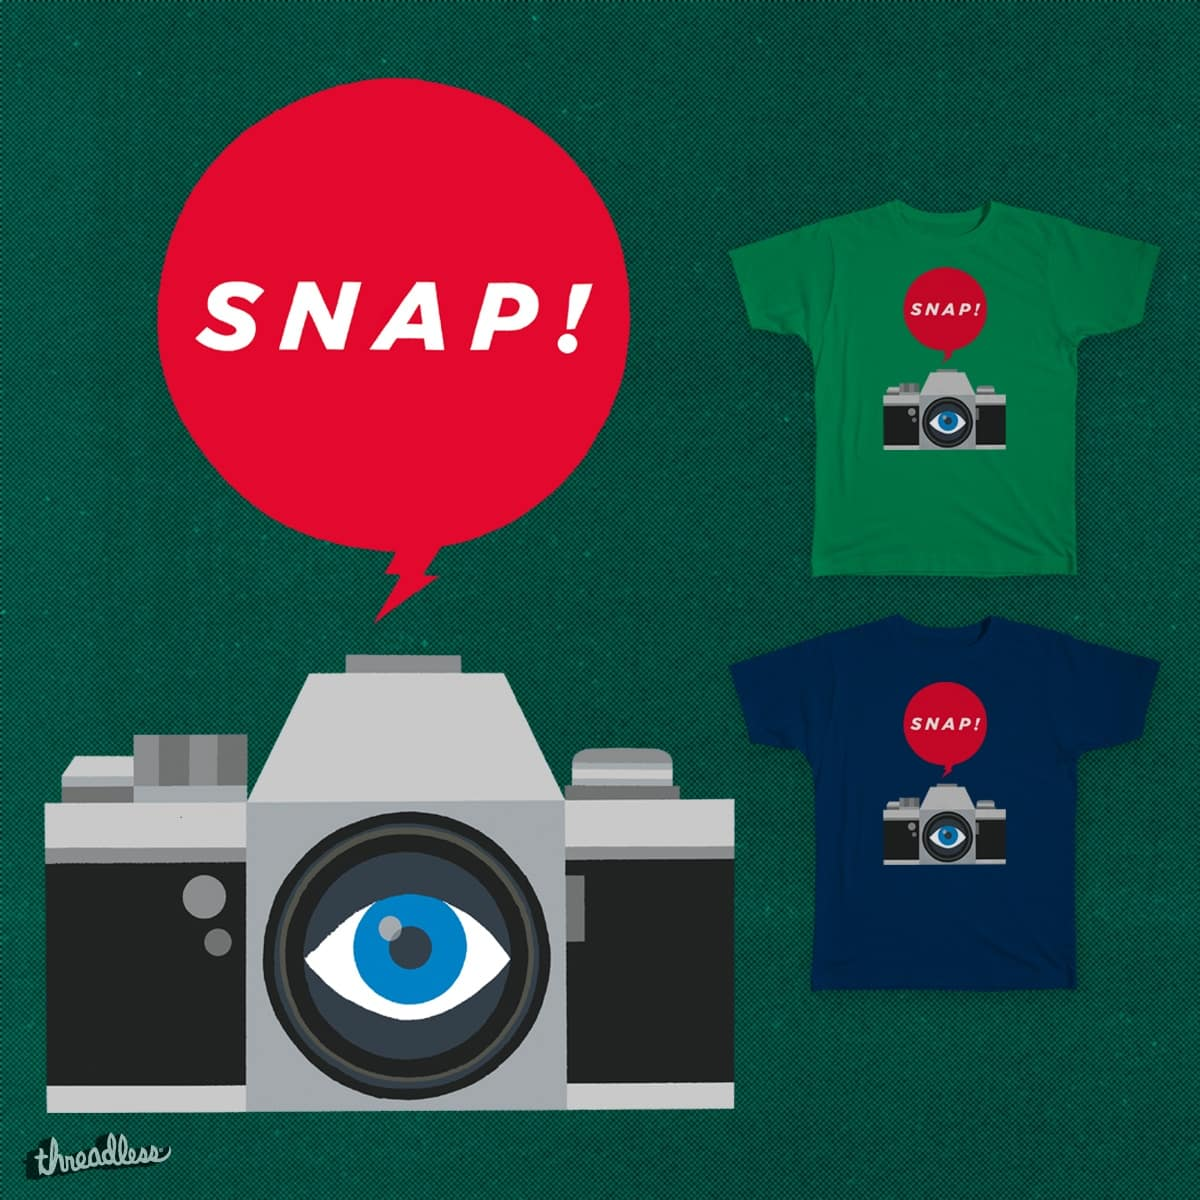 SNAP! by Spotsworth on Threadless